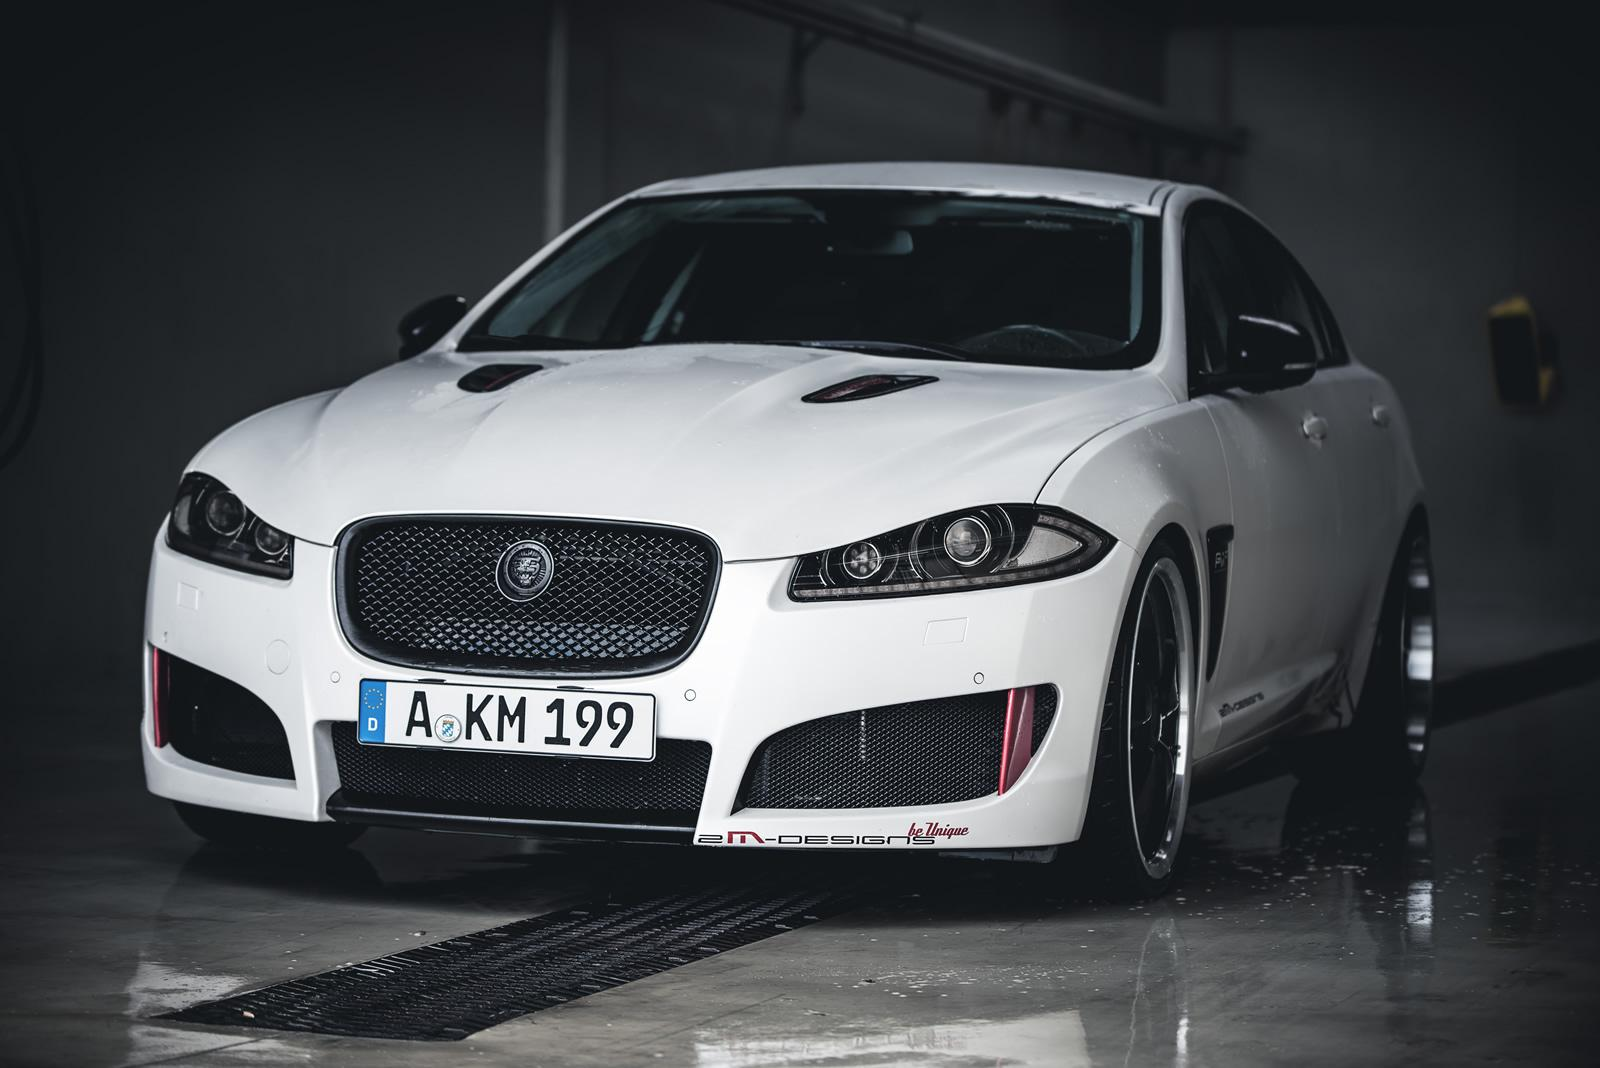 Pimped Out Cars Wallpapers Jaguar Xf Complex Tuning Transformation By 2m Designs